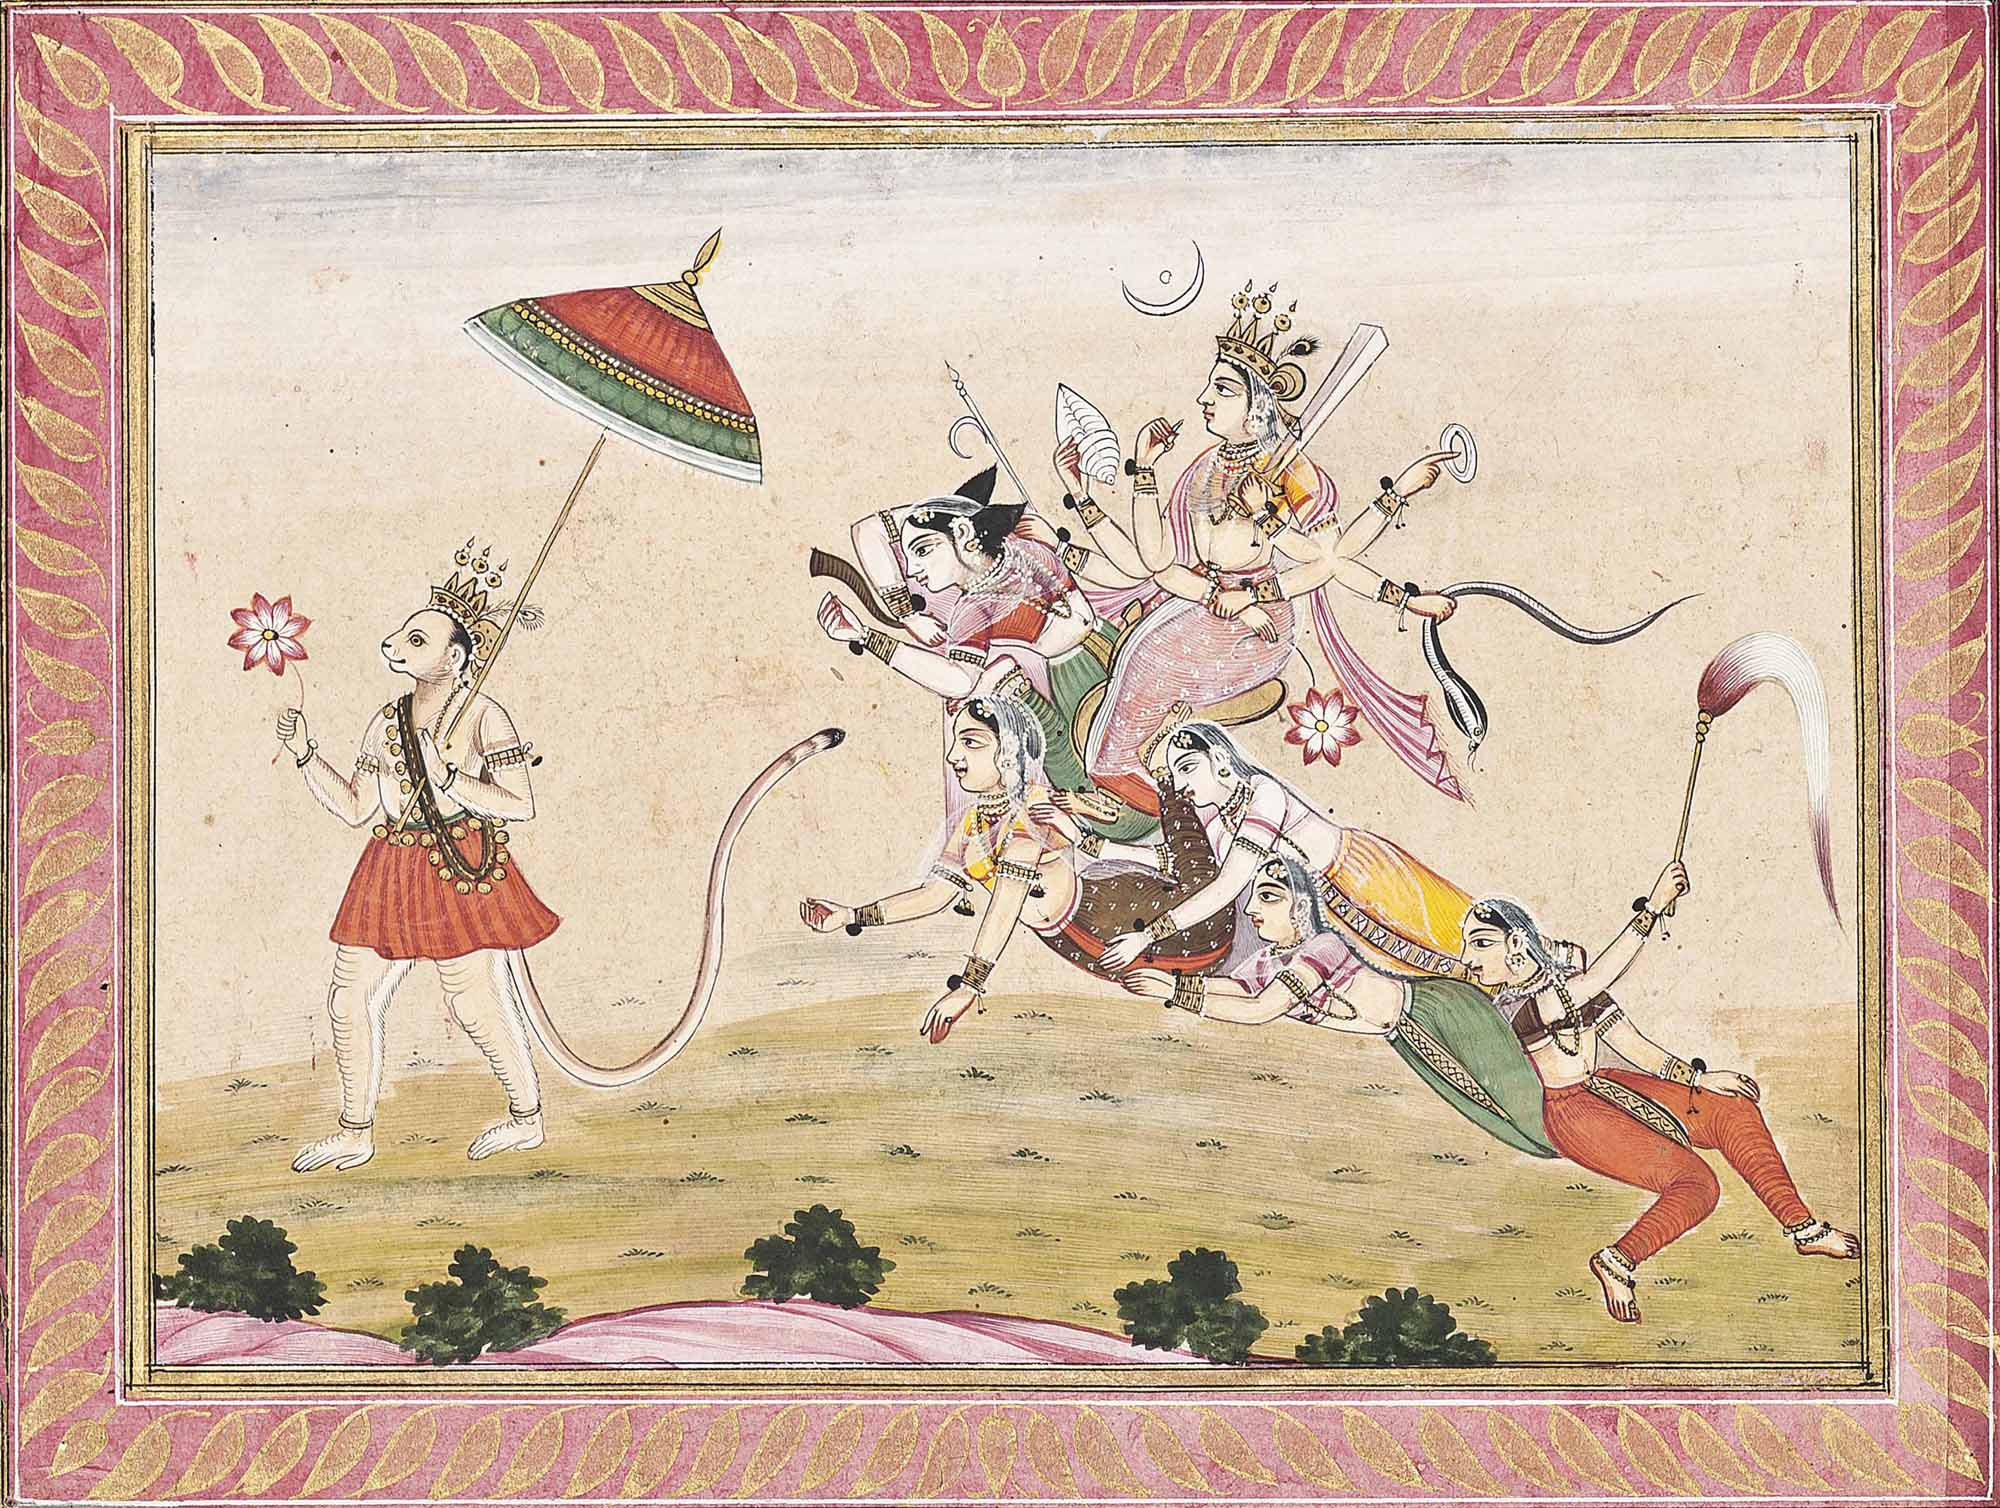 DURGA RIDING A COMPOSITE TIGER